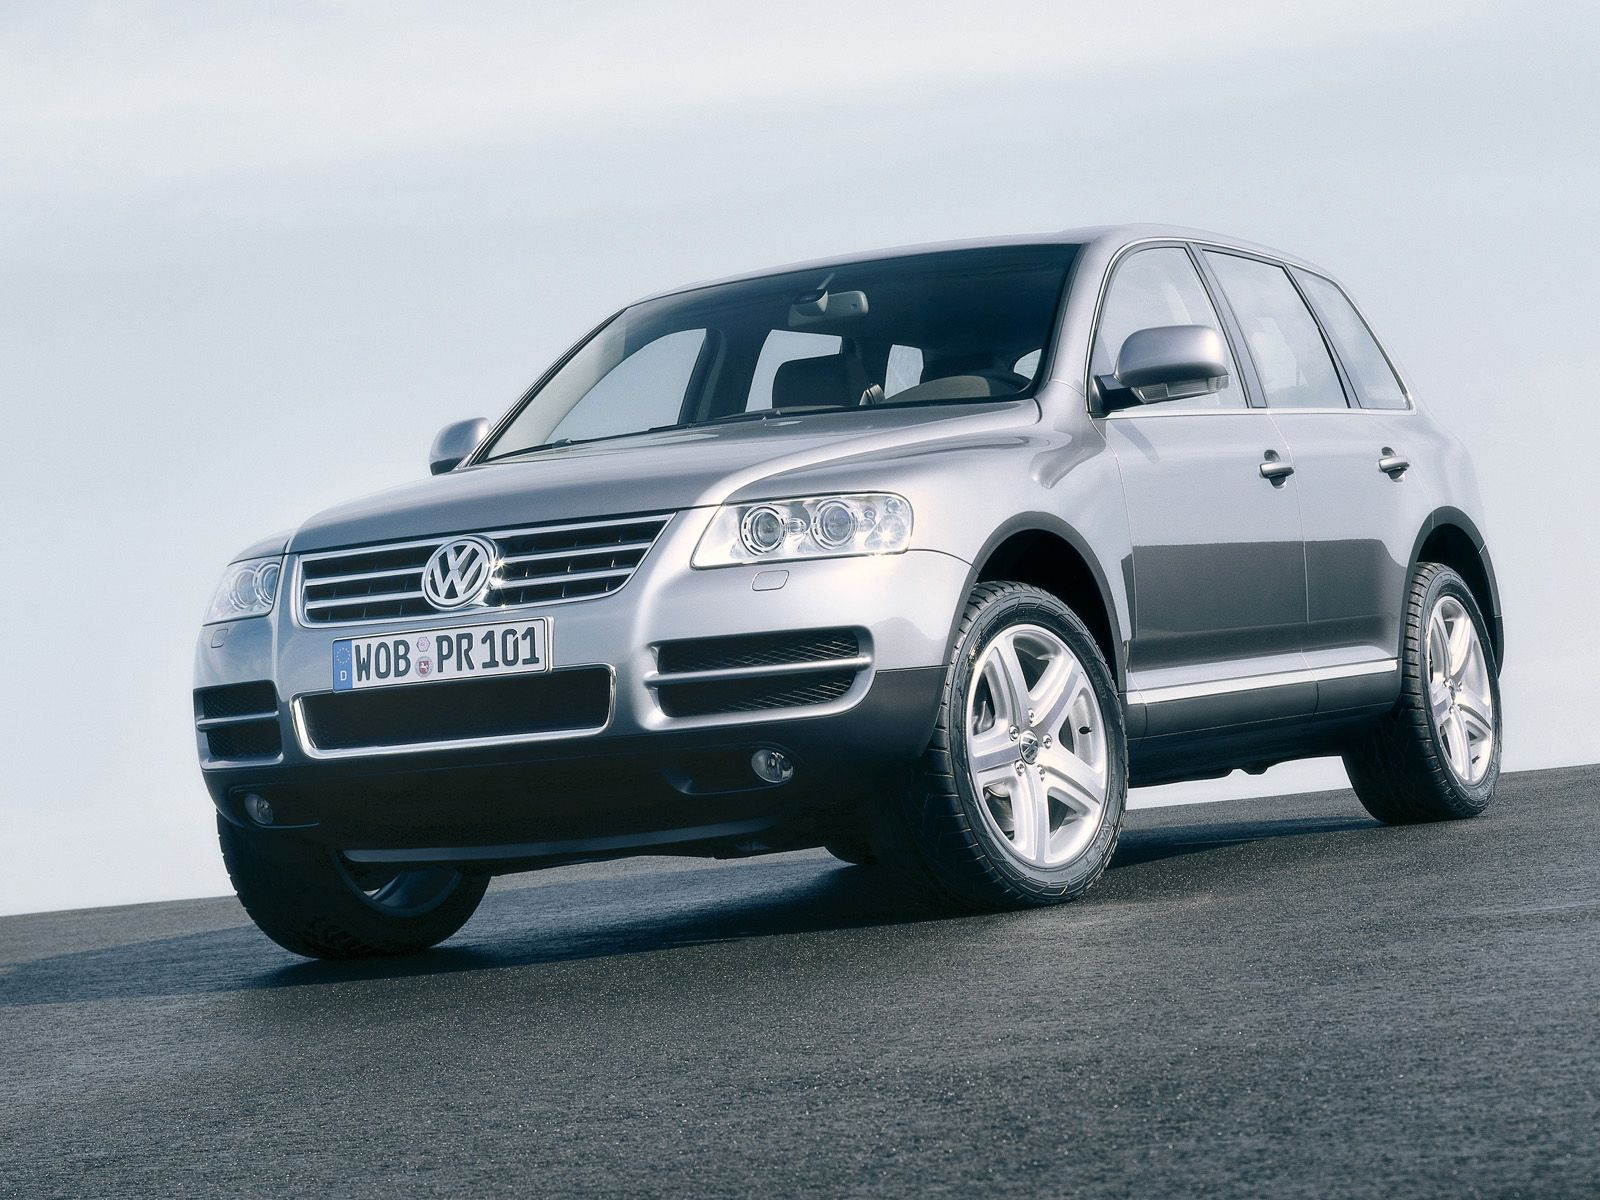 Autorental Bulgaria Ltd Car Rental Company In Sofia Invest 2004 Vw Touareg Fuse Box Bulgariacom